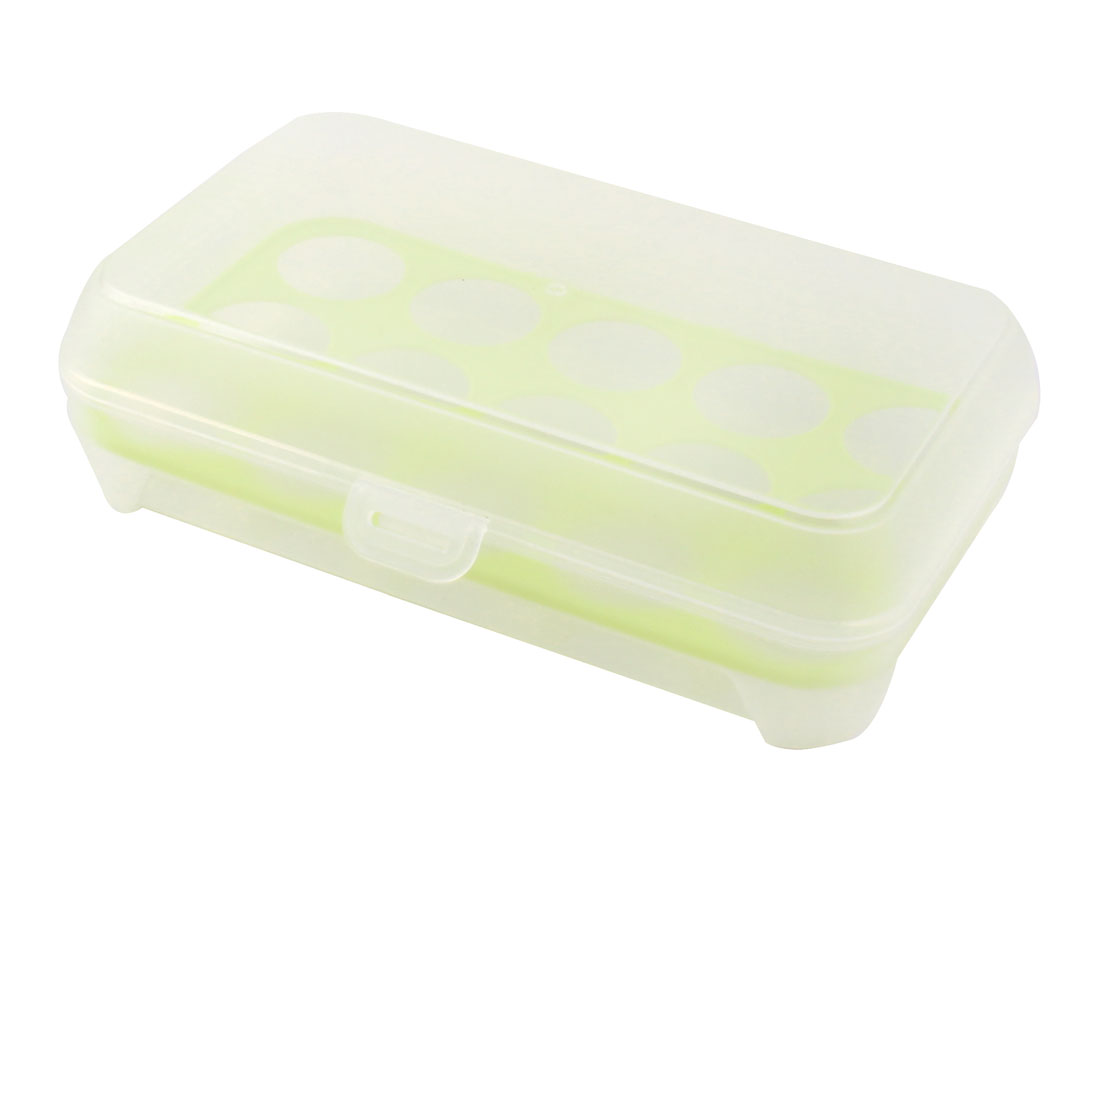 Household Kitchen Refrigerator Plastic Rectangle Shaped 15 Slots Eggs Storage Box Container Case Yellow